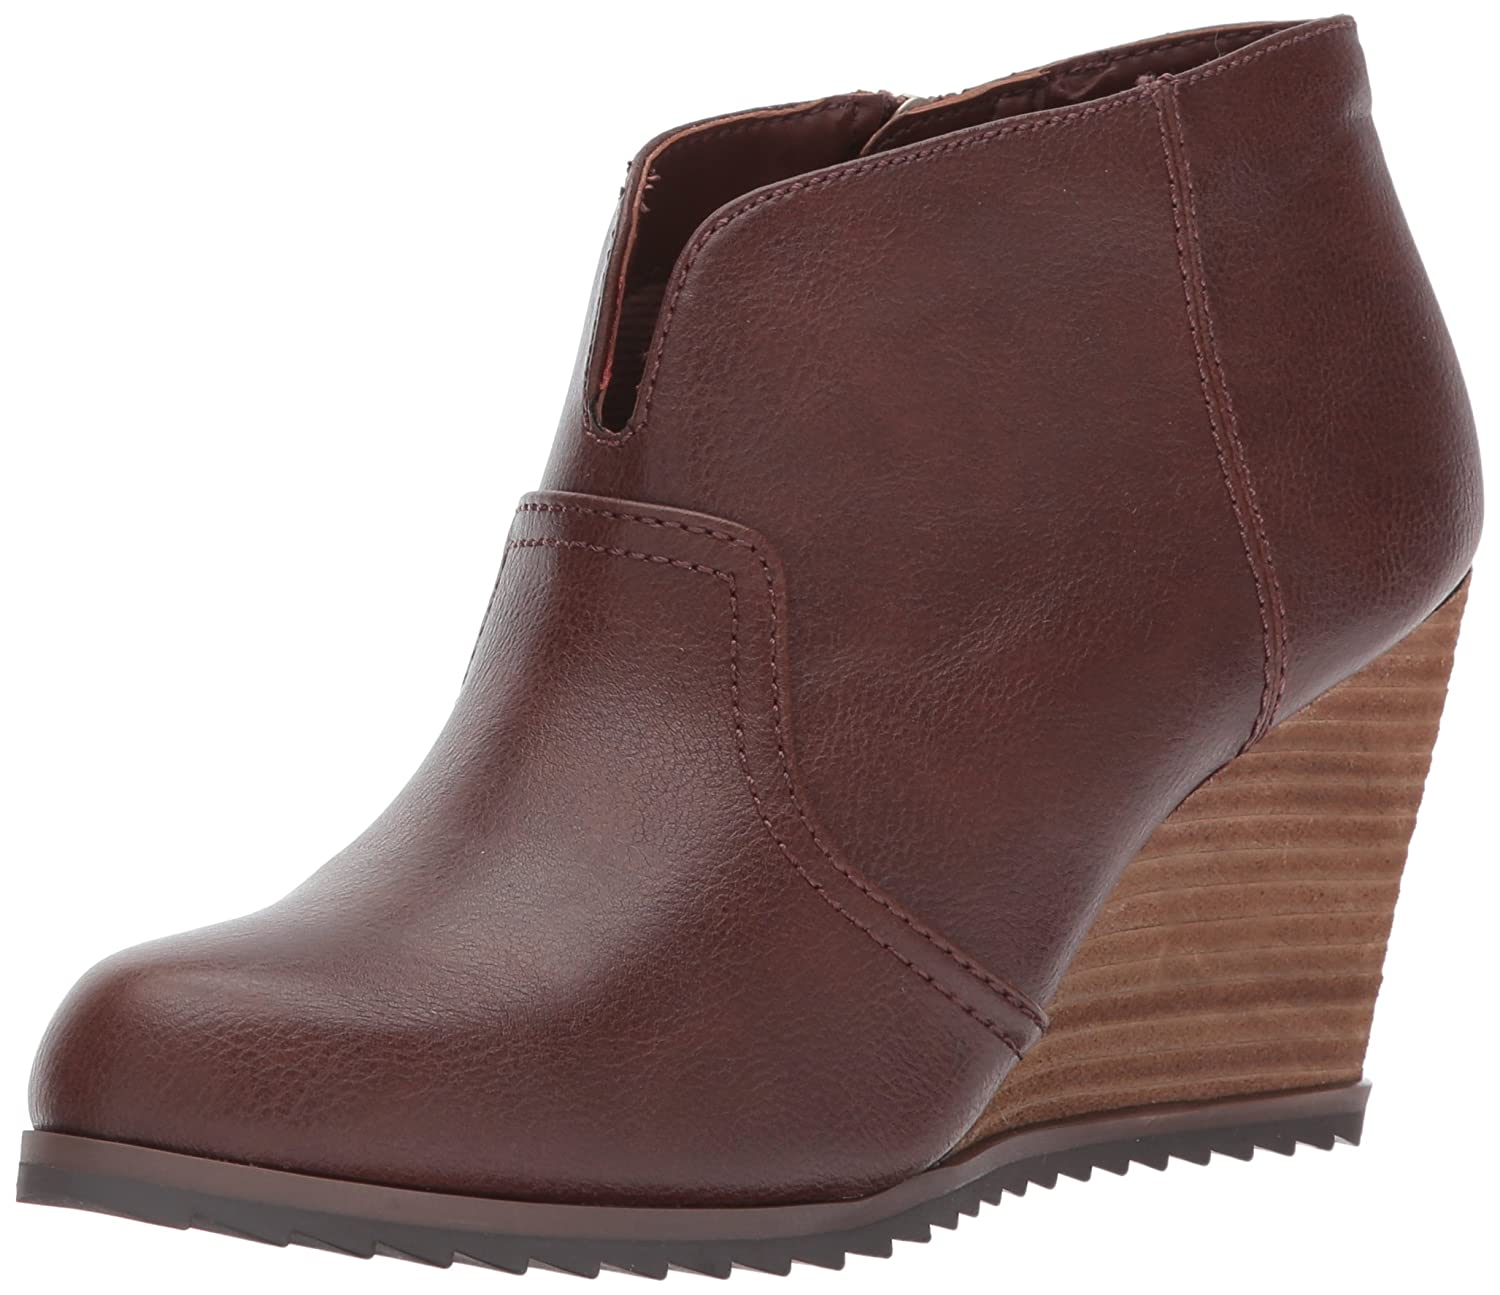 Dr. Scholl's Shoes Women's Inform Boot B071KQ9ZL7 8.5 B(M) US|Copper Brown